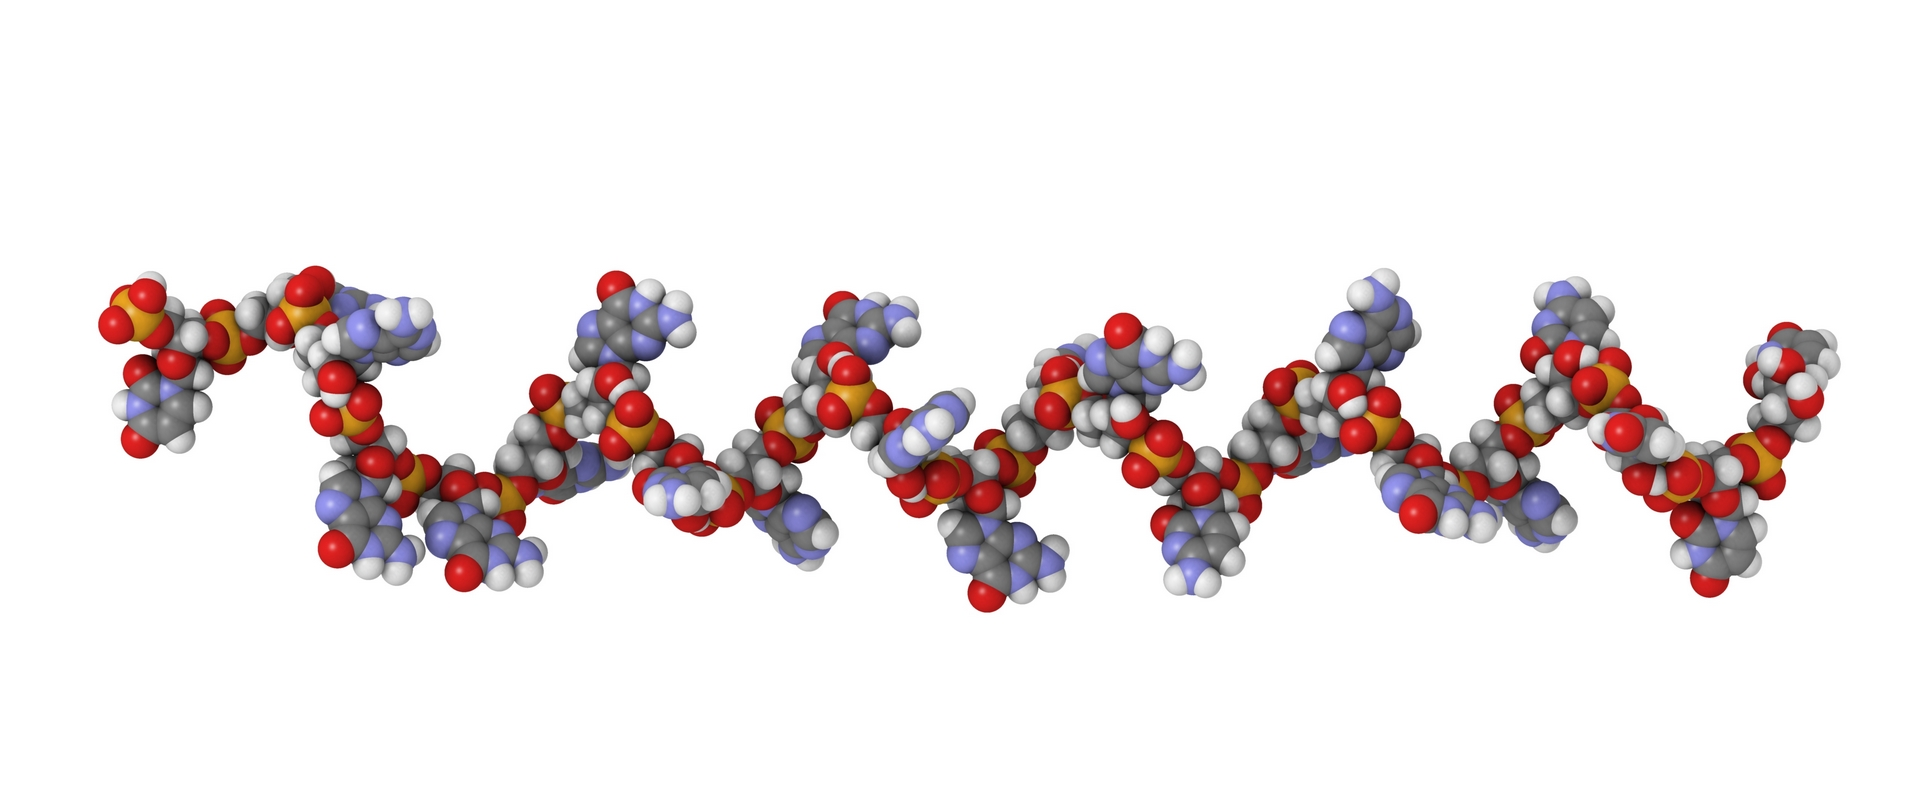 Quality Assistance Oligonucleotides analytical services